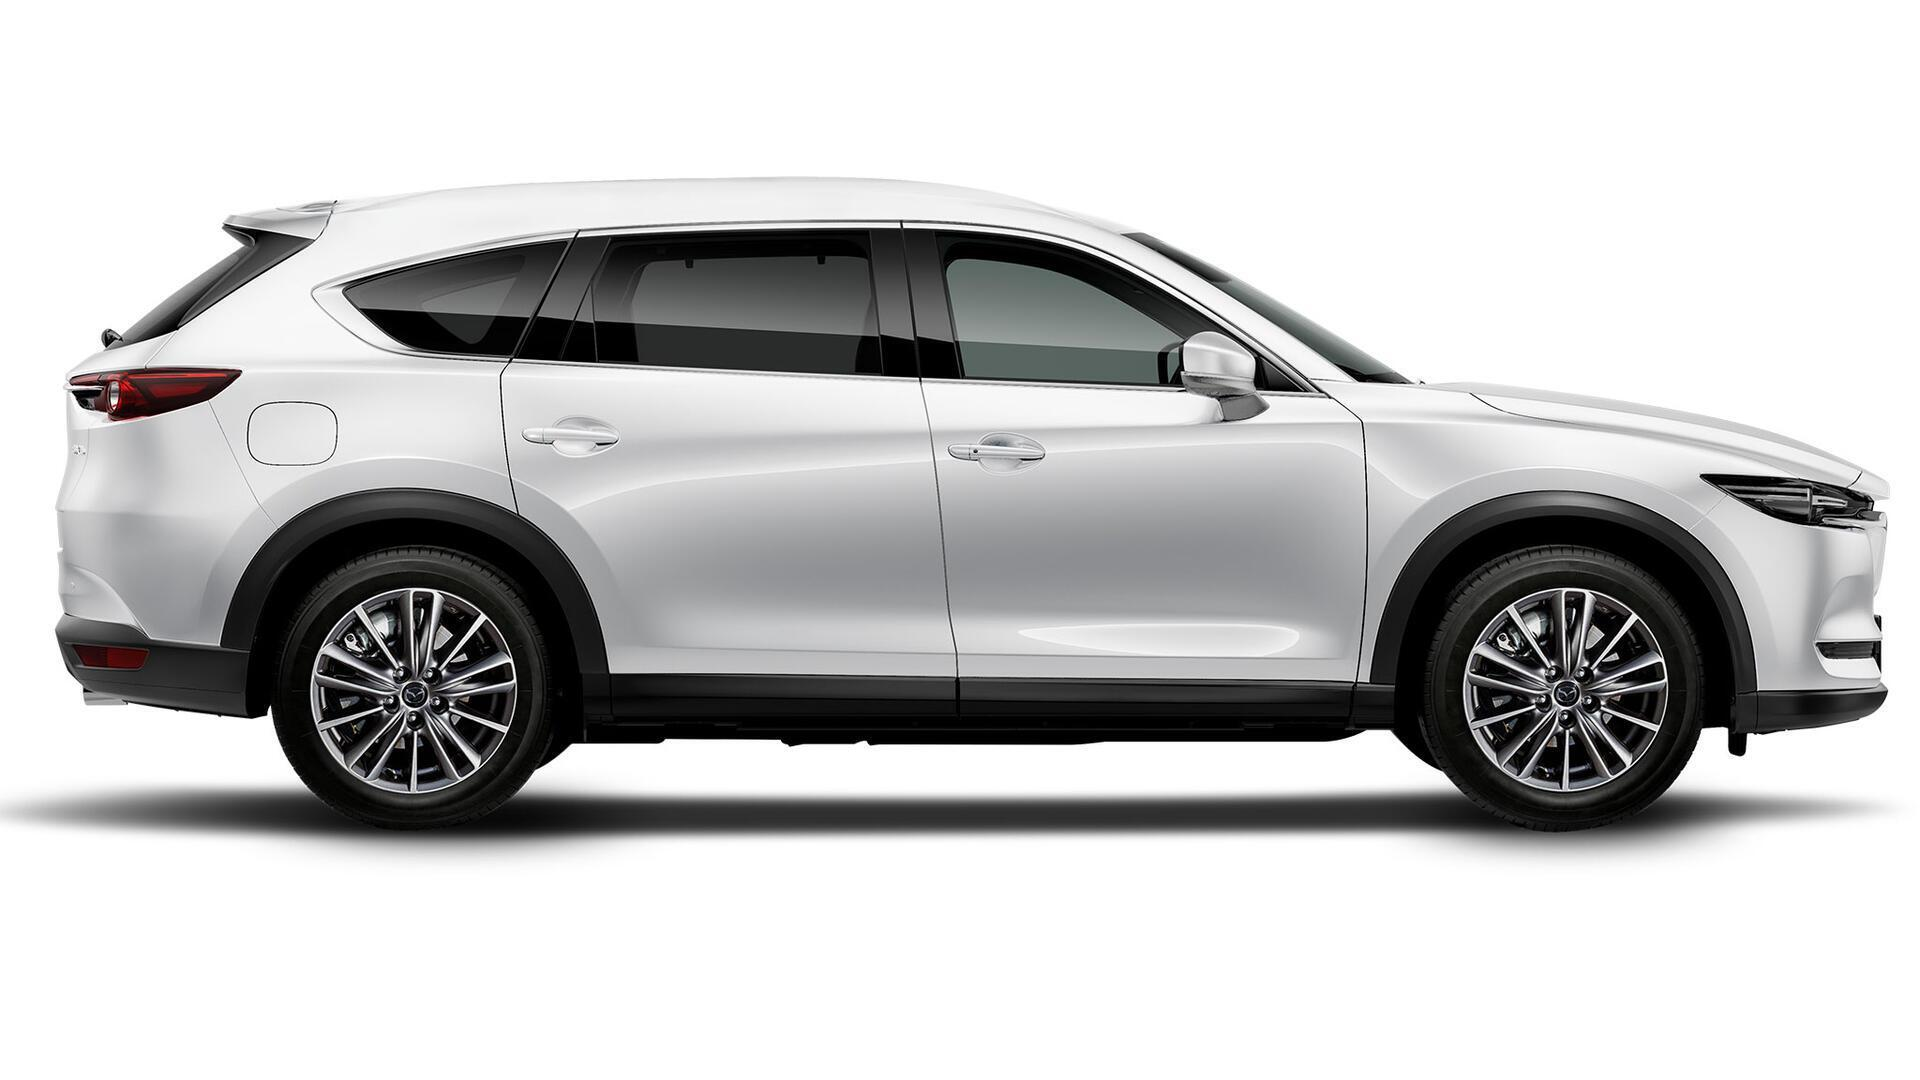 mazda-cx-8-deluxe-lua-chon-suv-7-cho-duoi-1-1-ty-dong